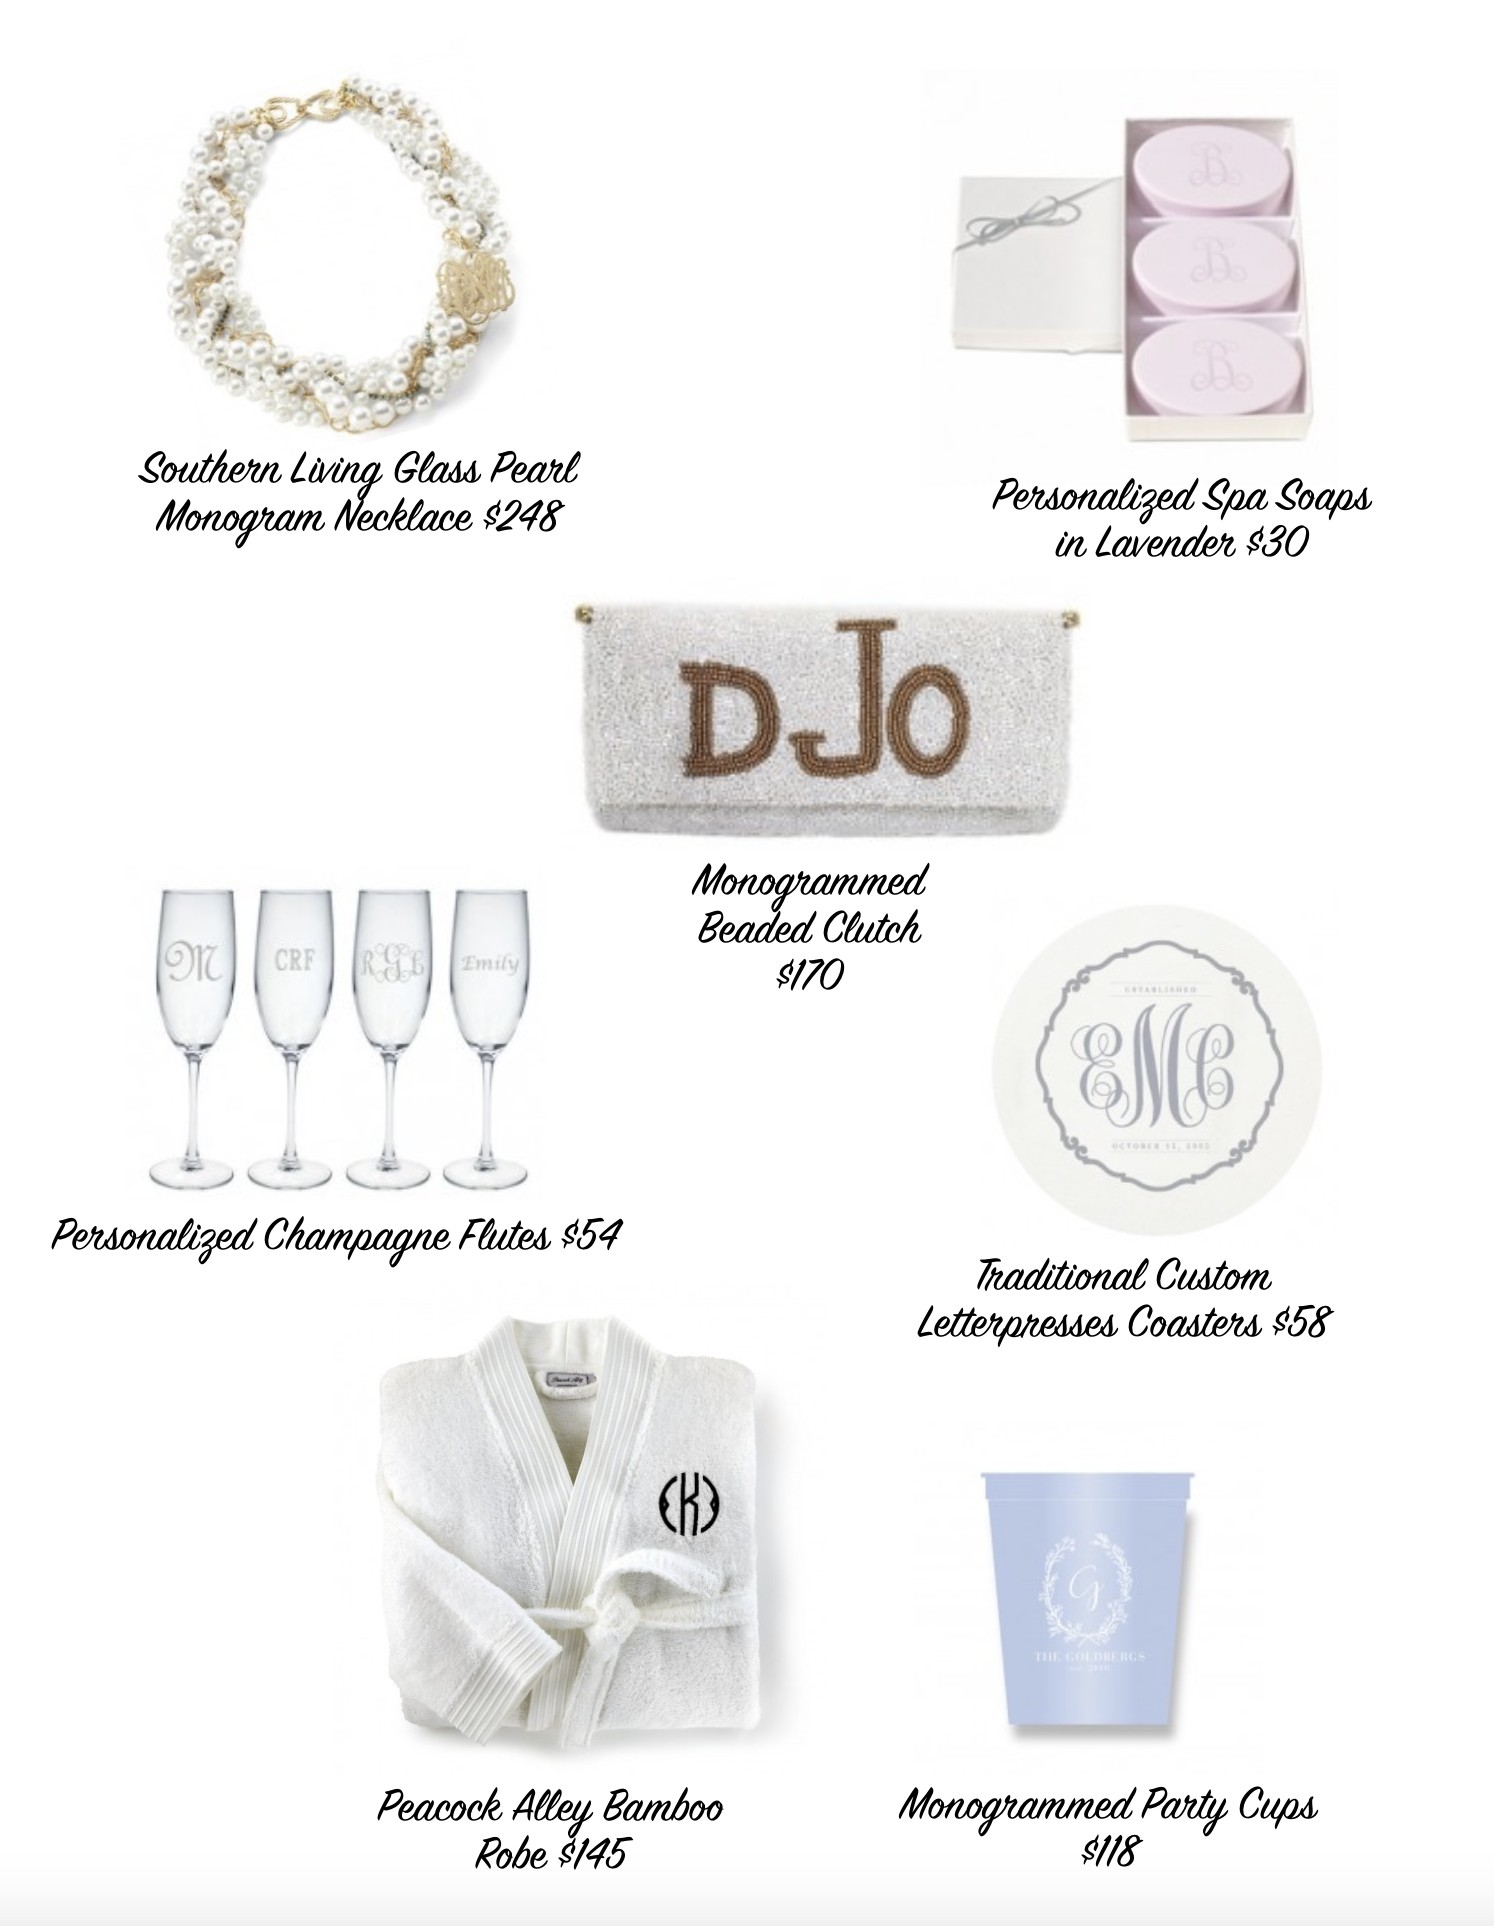 Monogrammed Items For The Bride The Well Appointed House Blog